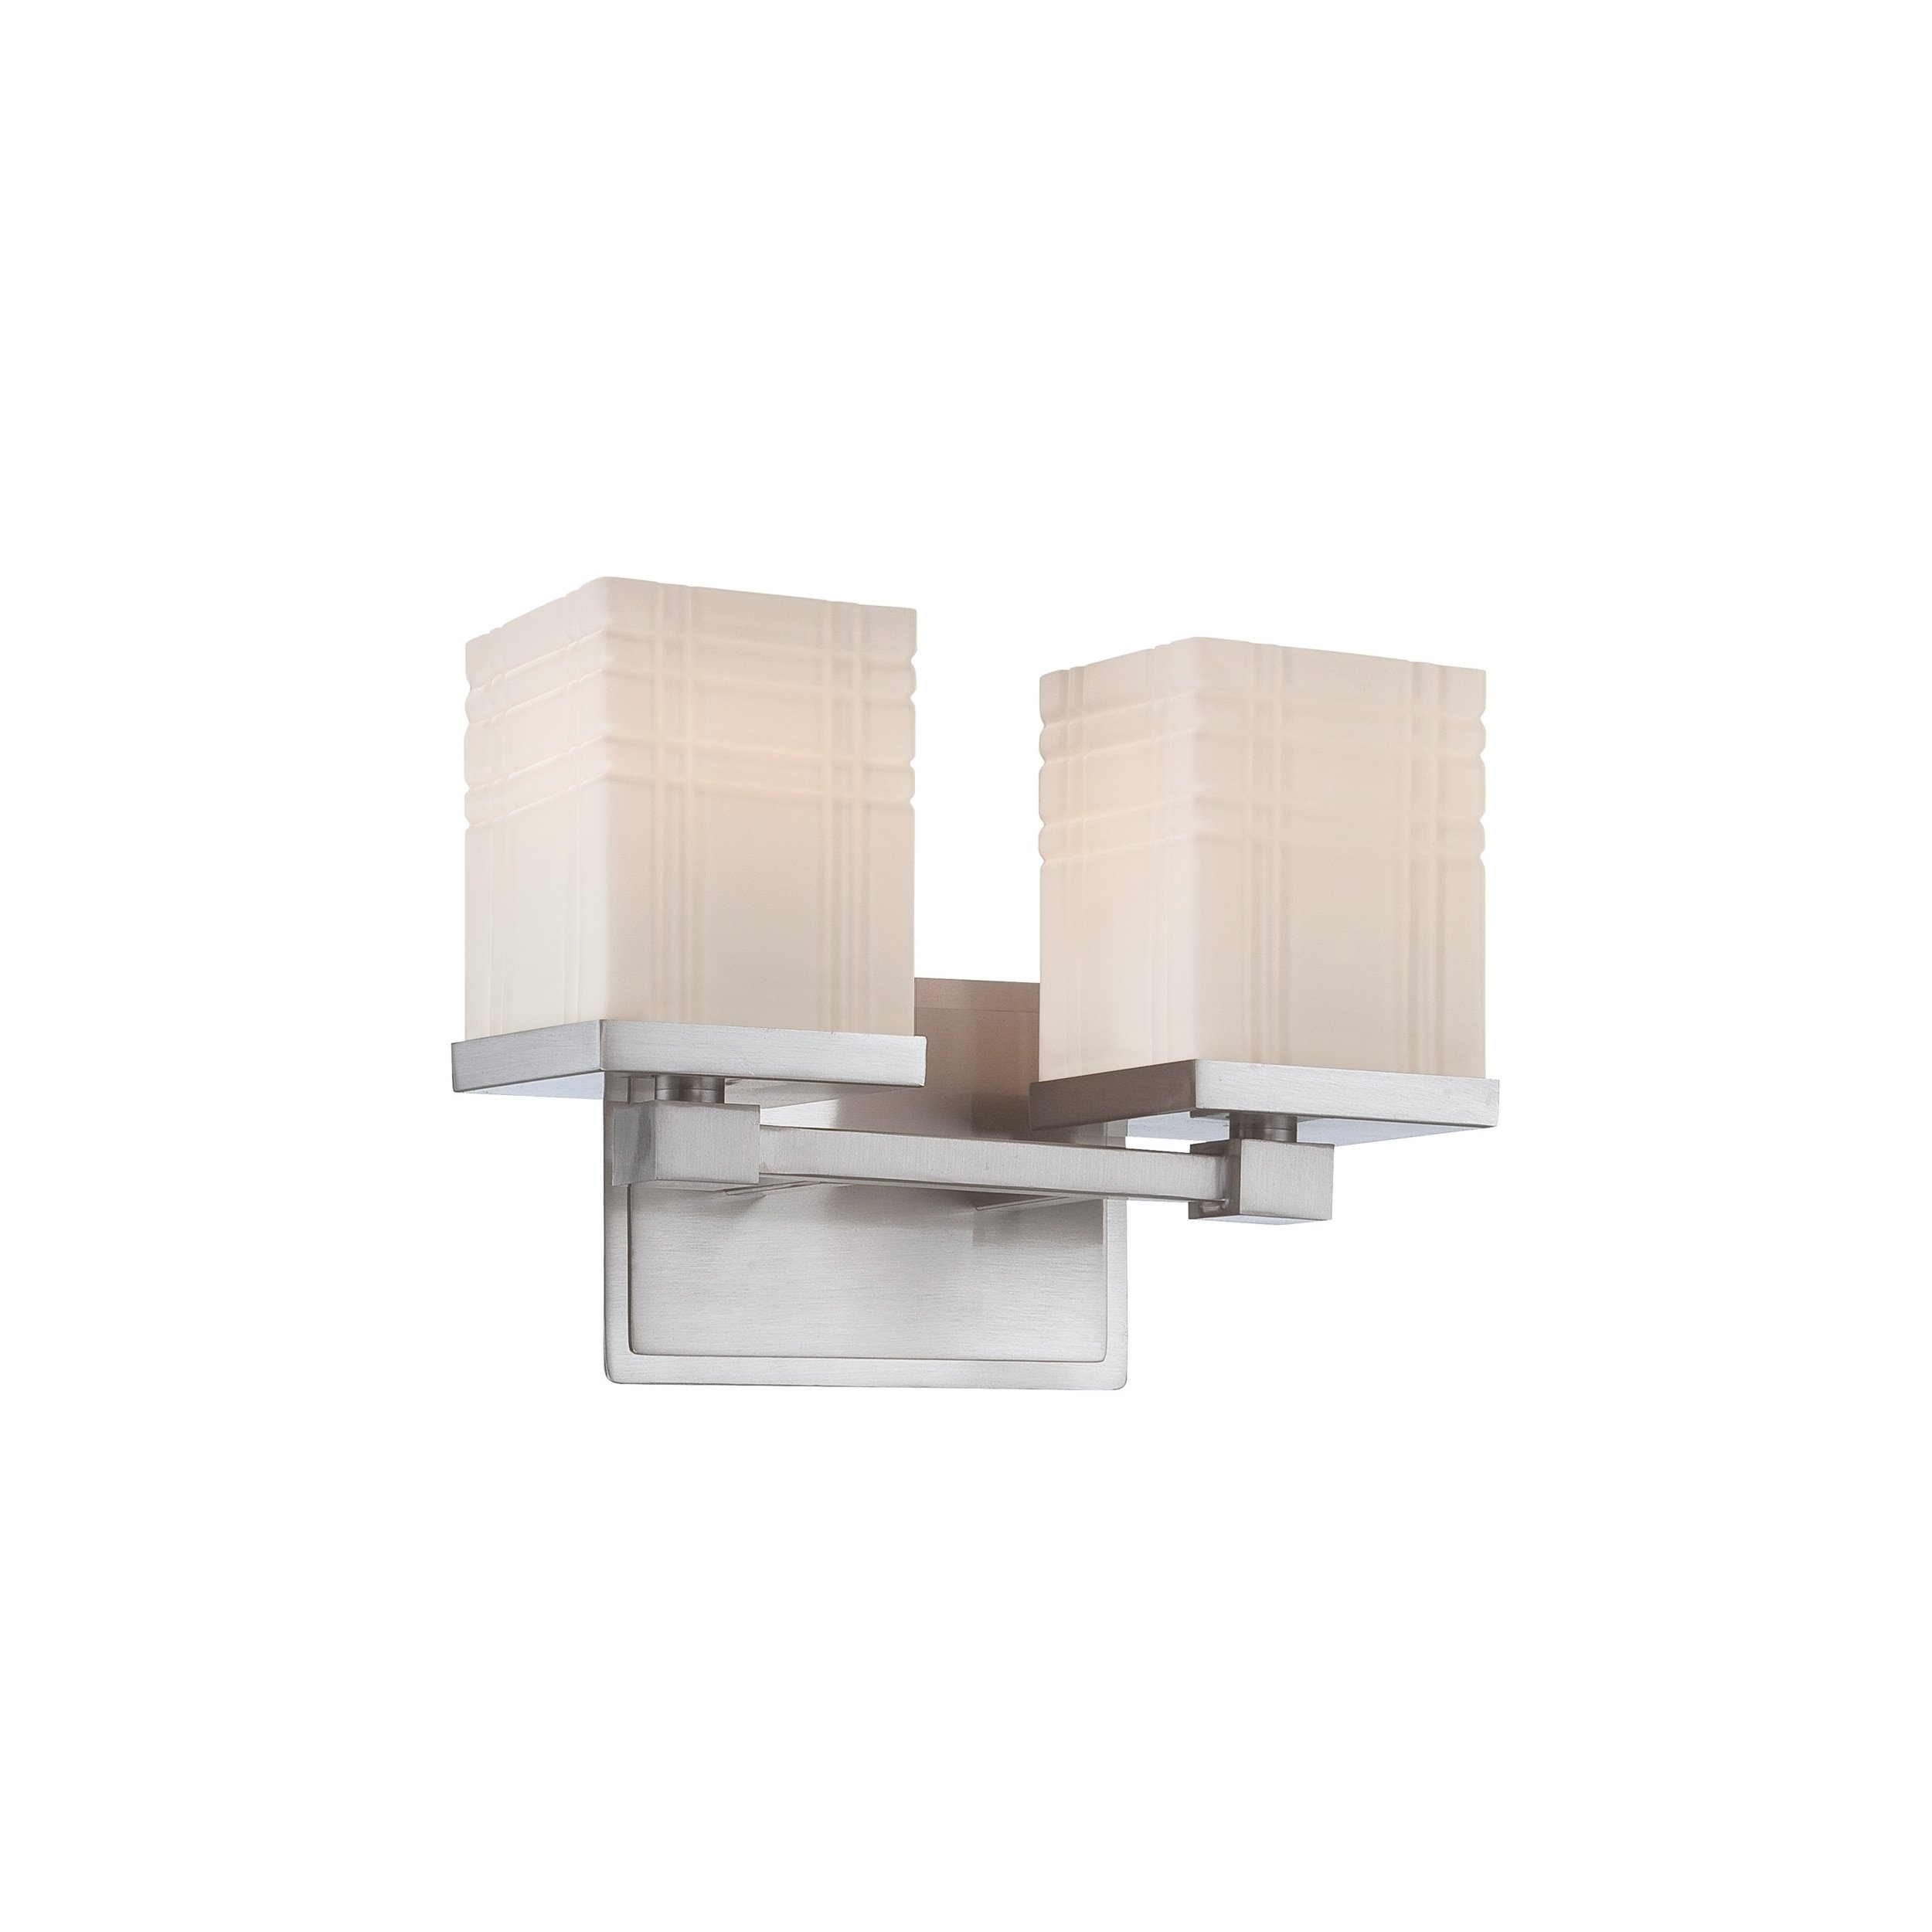 Lite Source LS-16342 E27 Type A 60W x 2 Benicio 2-Lite Vanity with PS/Frost Glass Shade